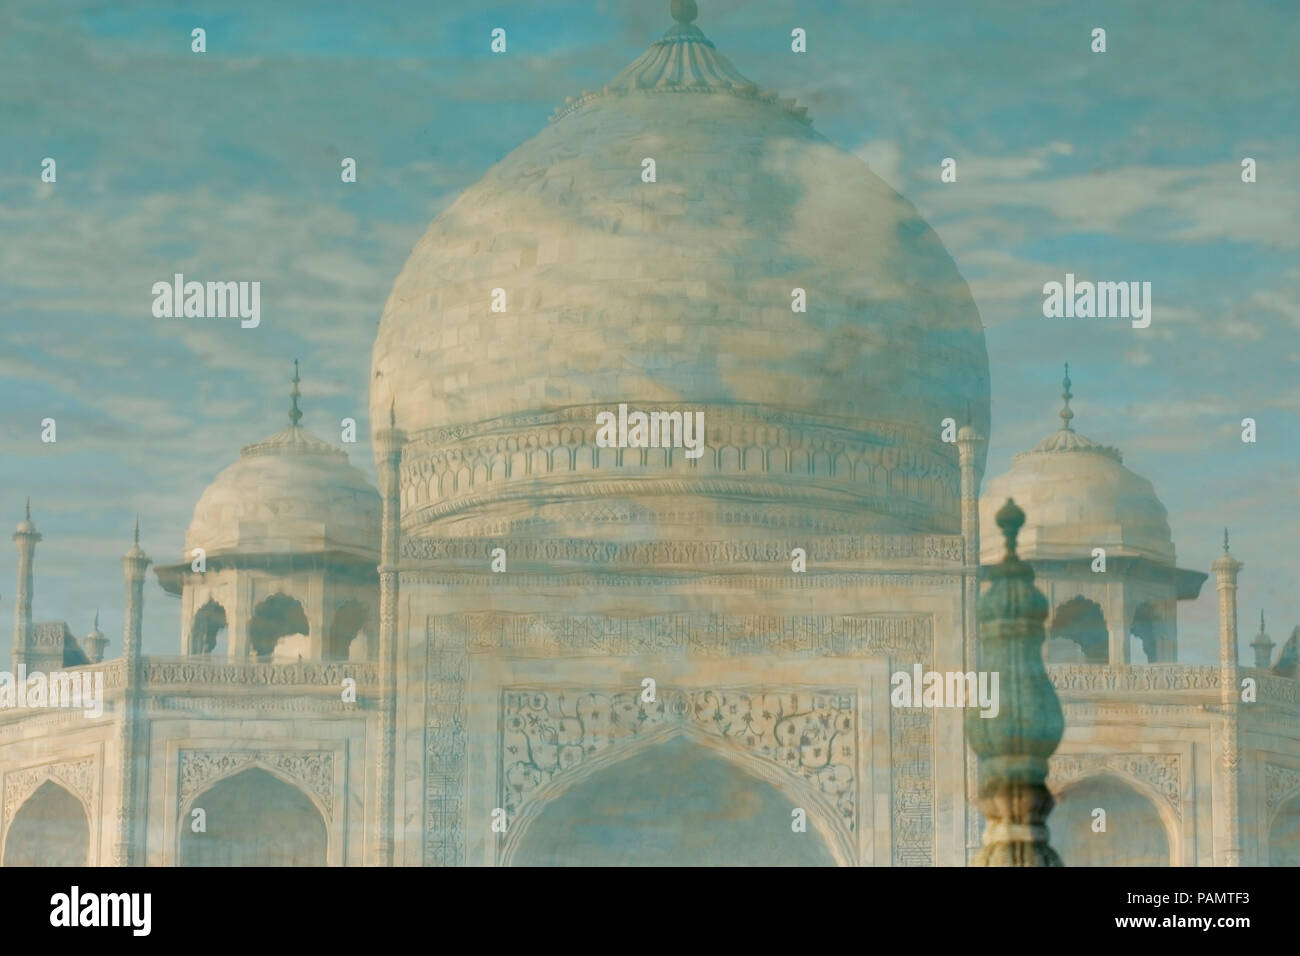 Taj mahal reflection in water at Agra A UNESCO World Heritage Site, A monument of love, Agra, Uttar Pradesh, India. - Stock Image